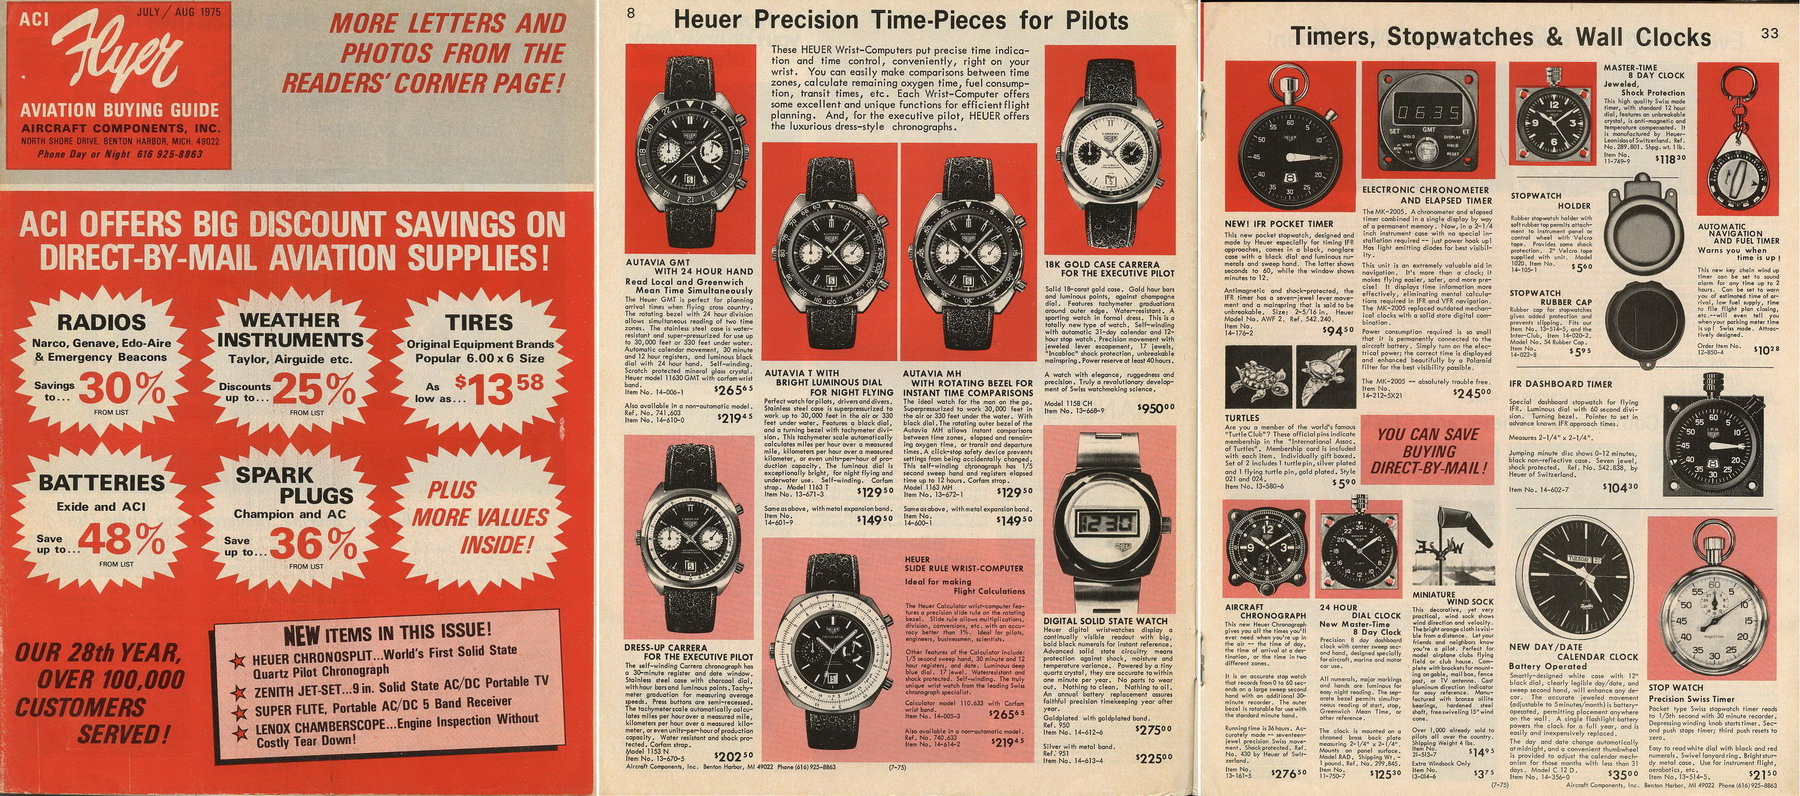 Catalog Showing Heuers for Civil Aviation